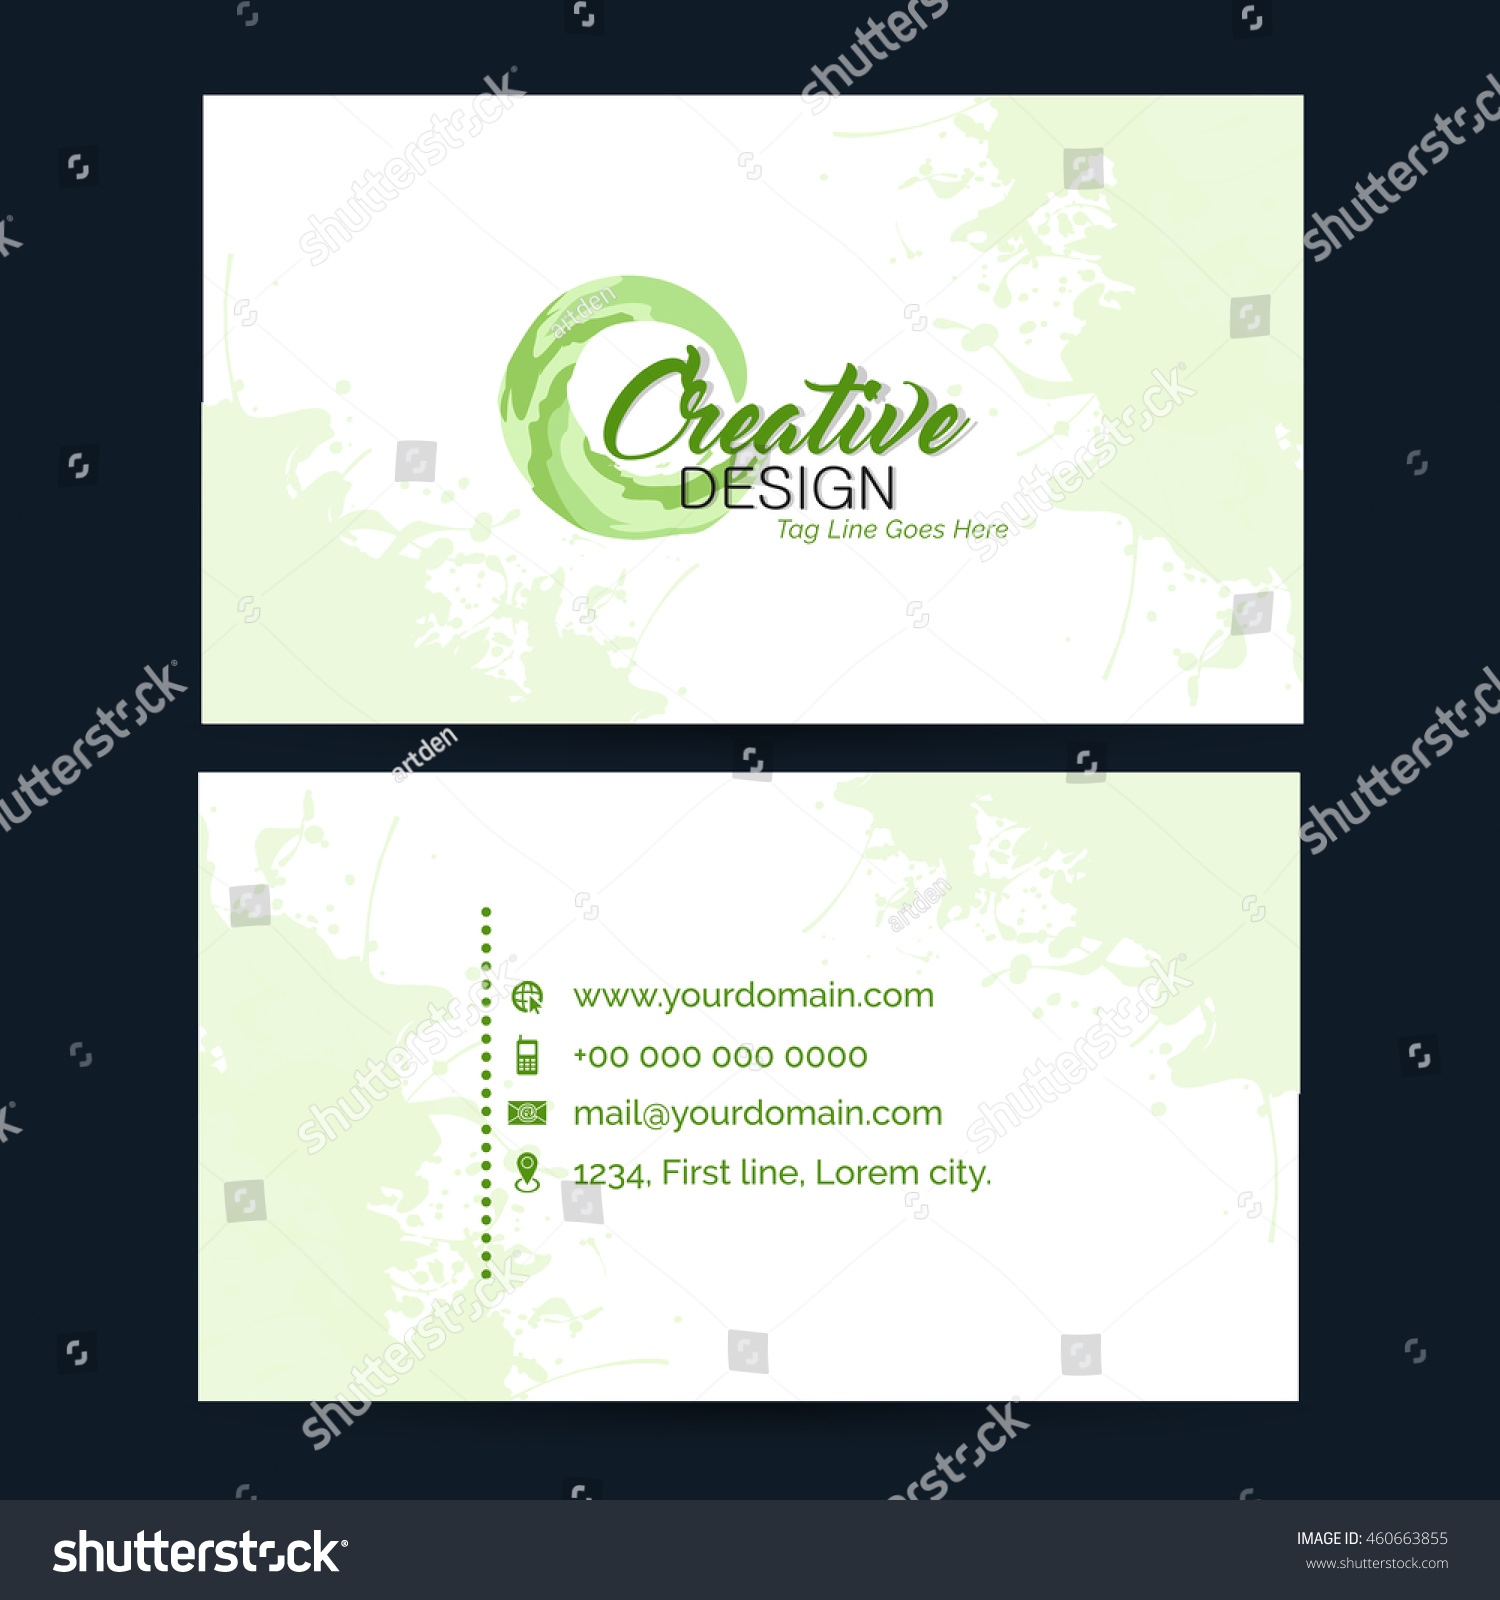 Avery Templates Business Cards 10 Per Sheet Images - Free Business ...